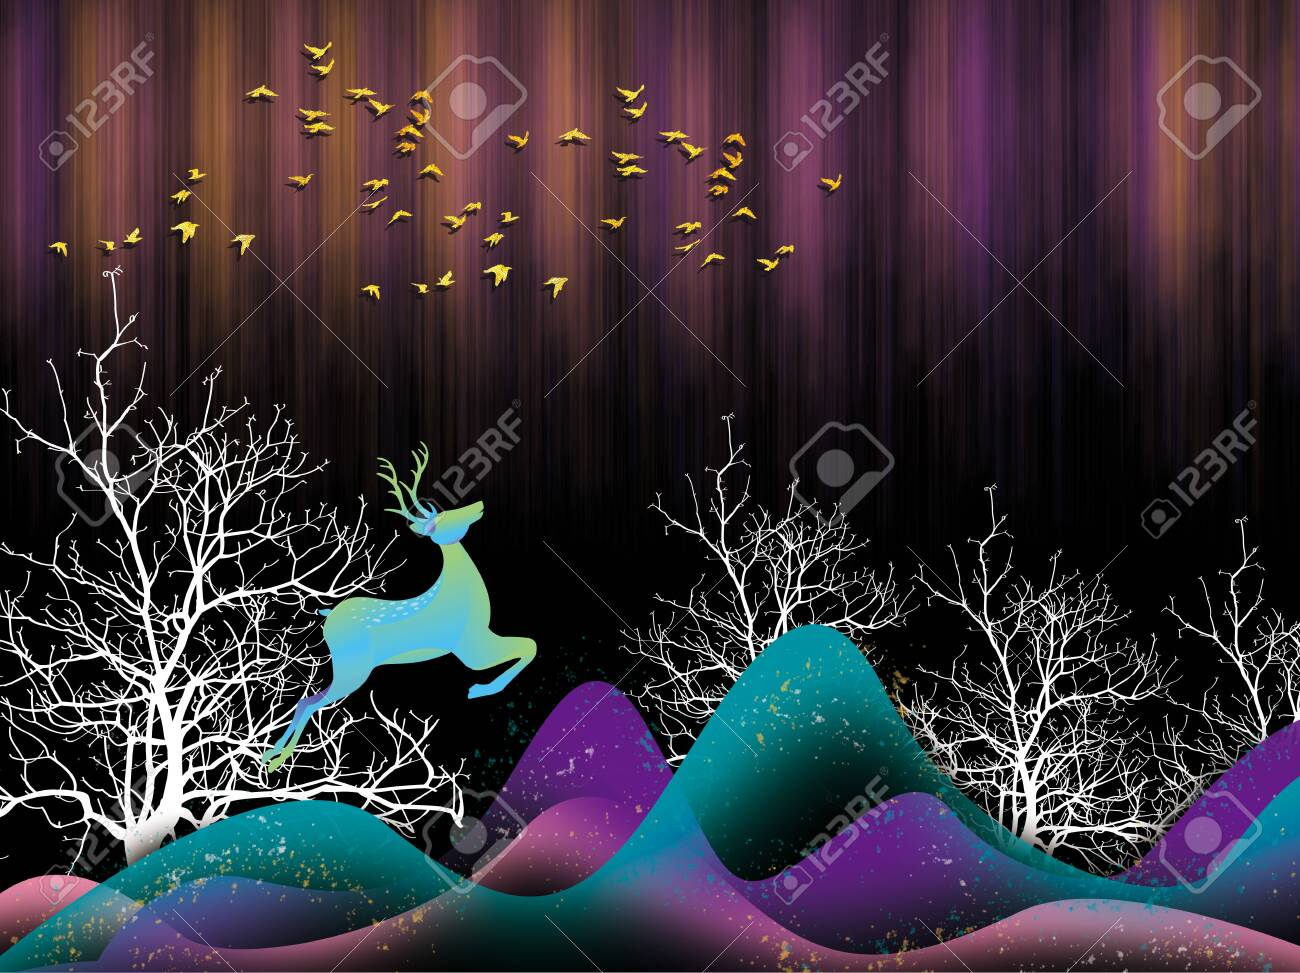 3d Modern Art Mural Wallpaper With Dark Blue Jungle Forest Stock Photo Picture And Royalty Free Image Image 148360808